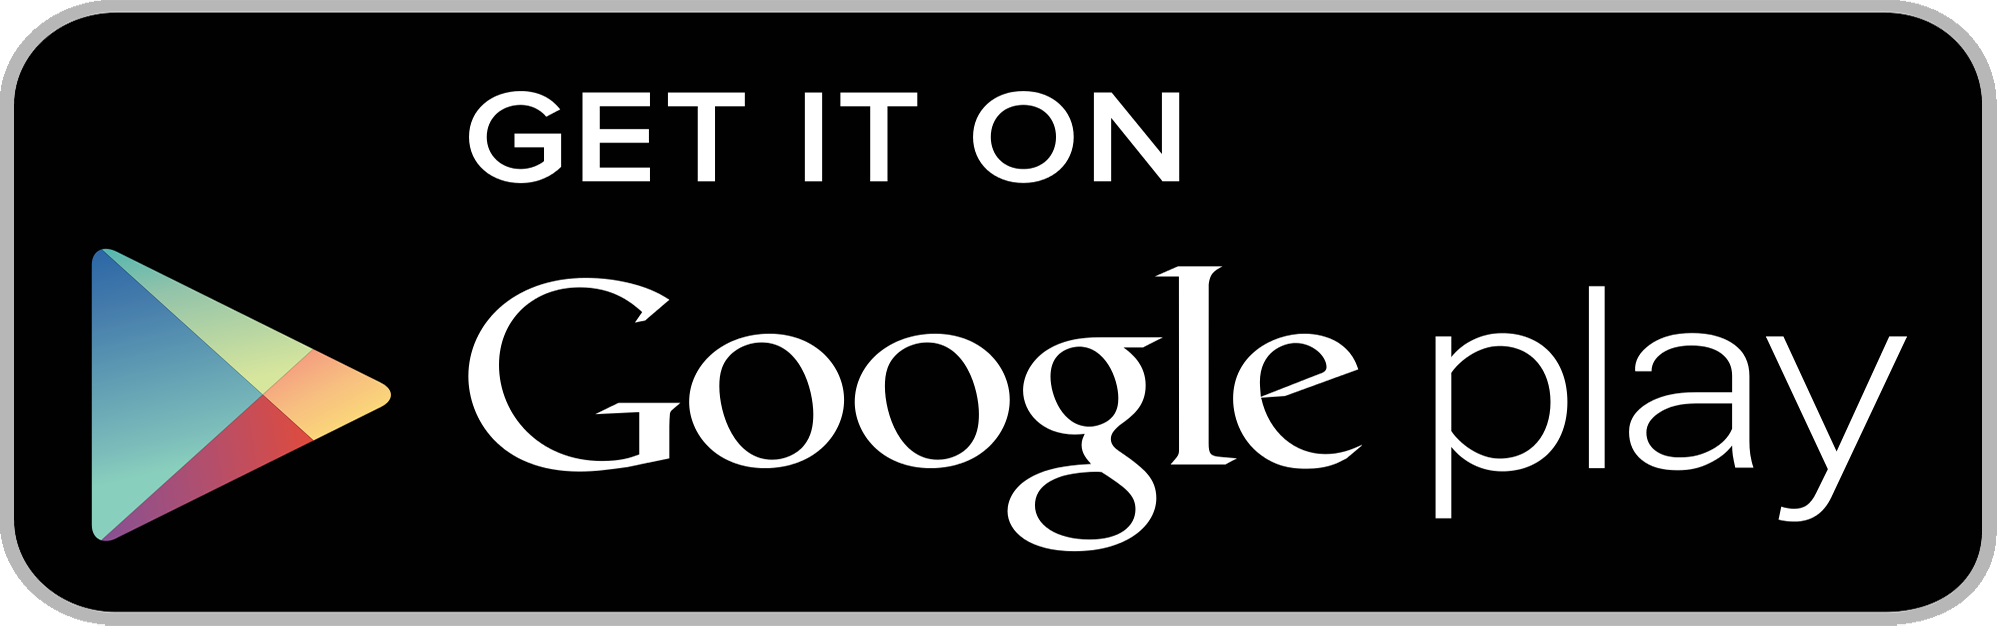 Get It On Google Play Badge Png - Google Play Badge Hdpng.com , Transparent background PNG HD thumbnail